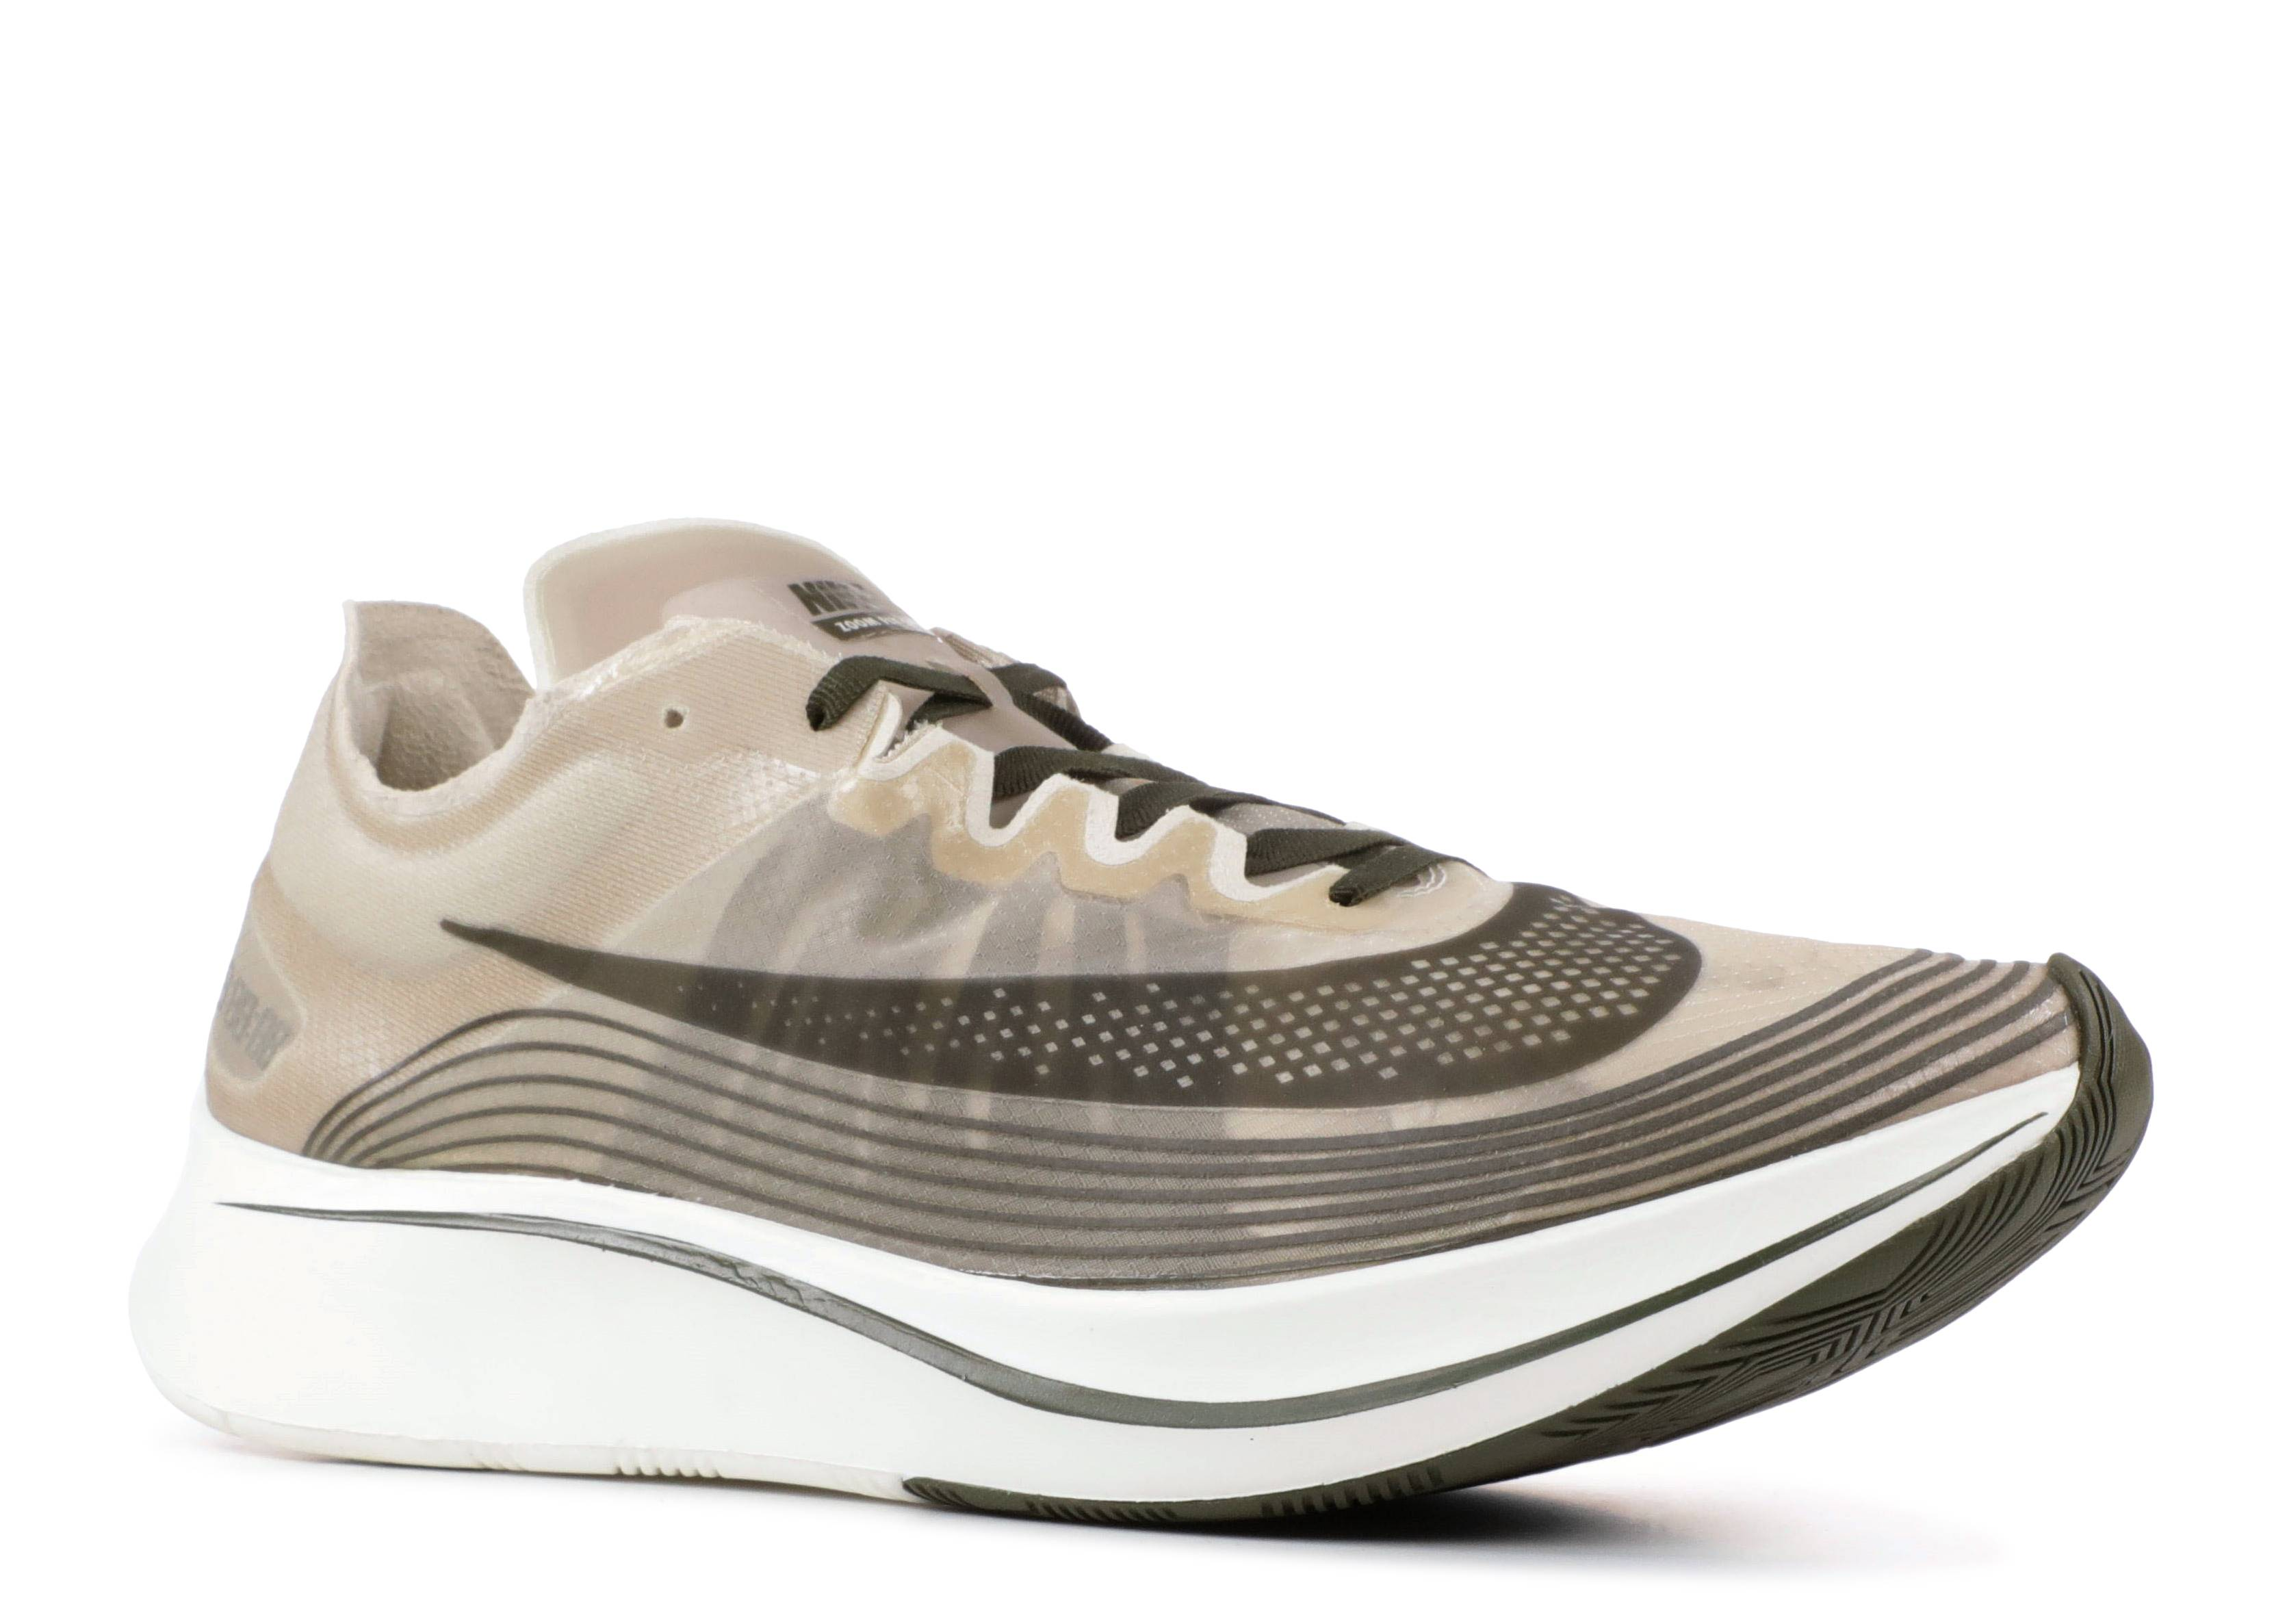 f59a5f64c013 Nikelab Zoom Fly Sp